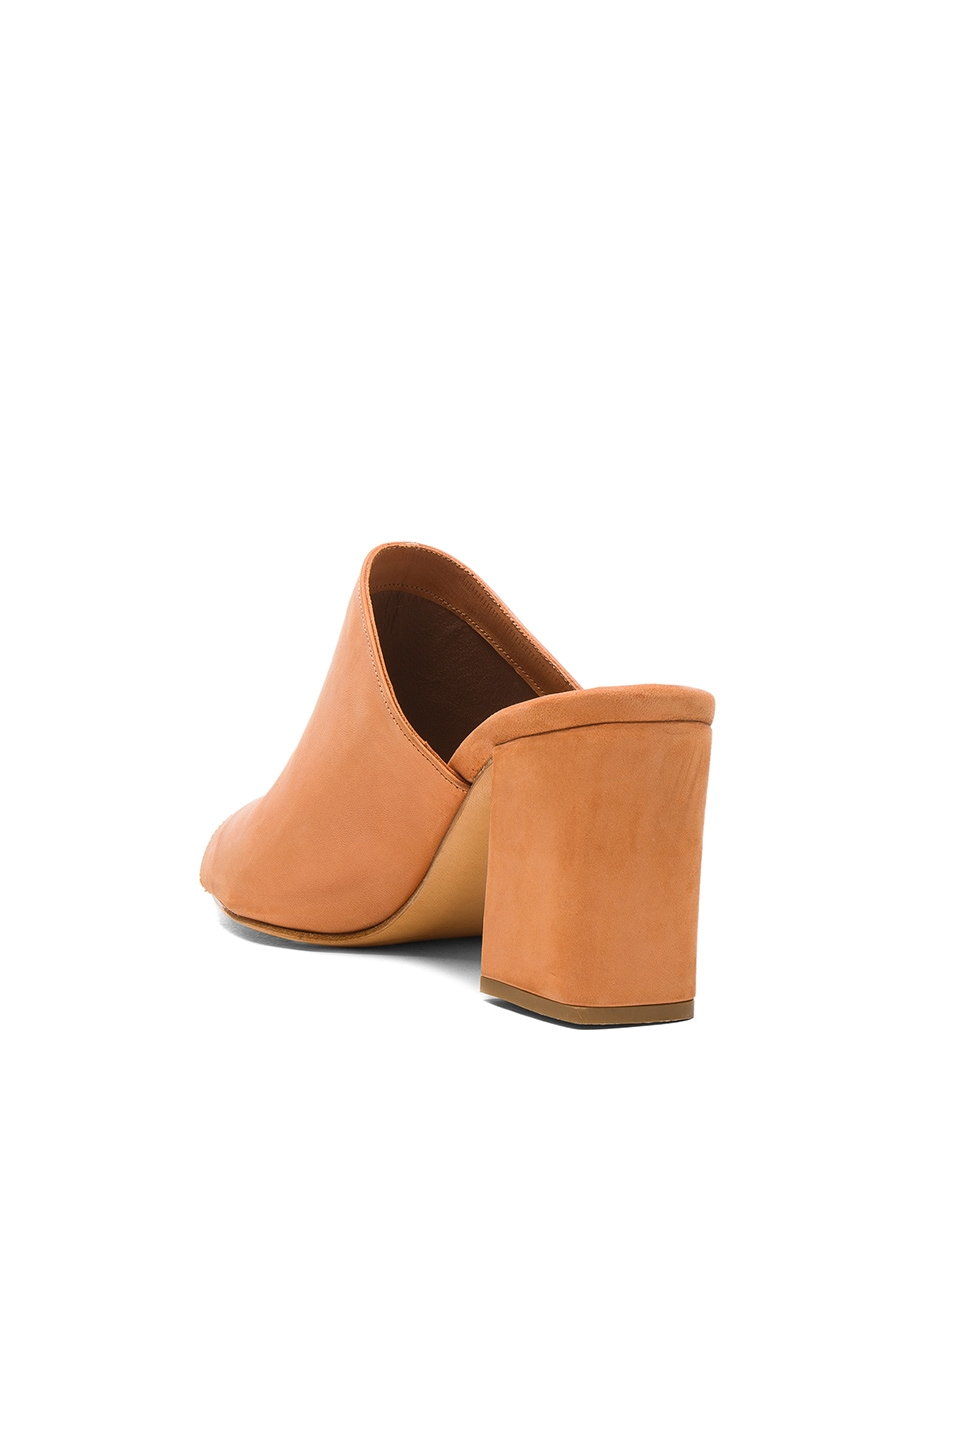 Image 3 of Maryam Nassir Zadeh Leather Penelope Mules in Natural Calf